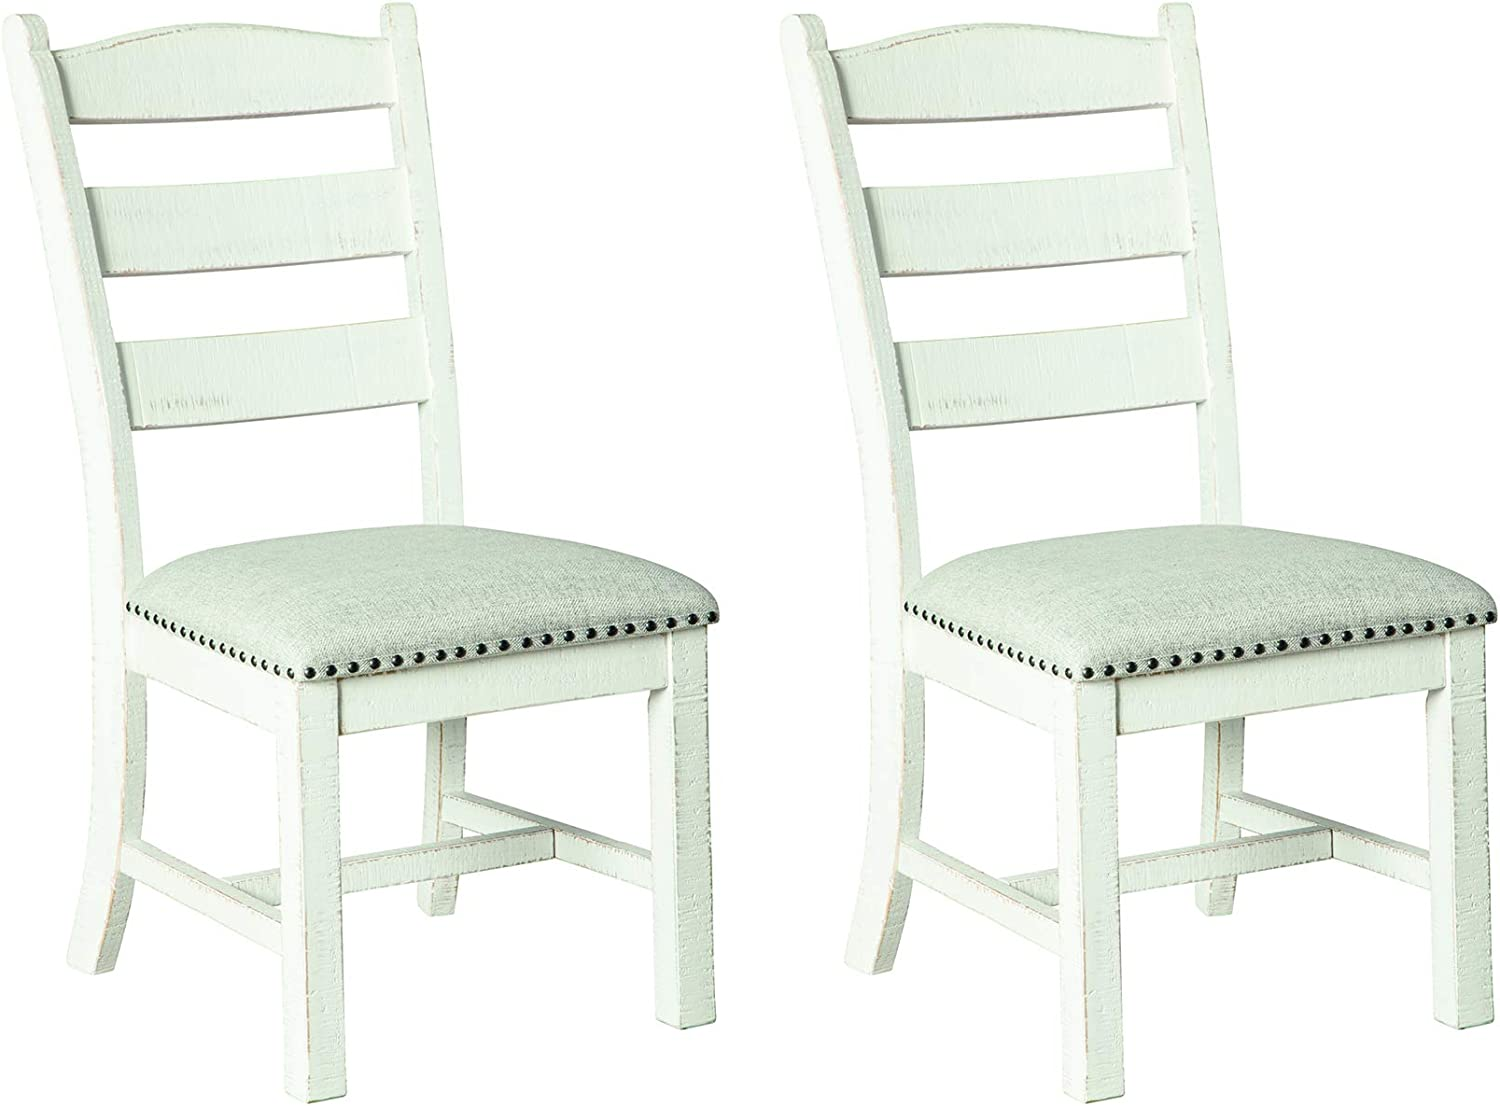 Signature Design by Ashley Valebeck Dining Room Chair, Beige/White